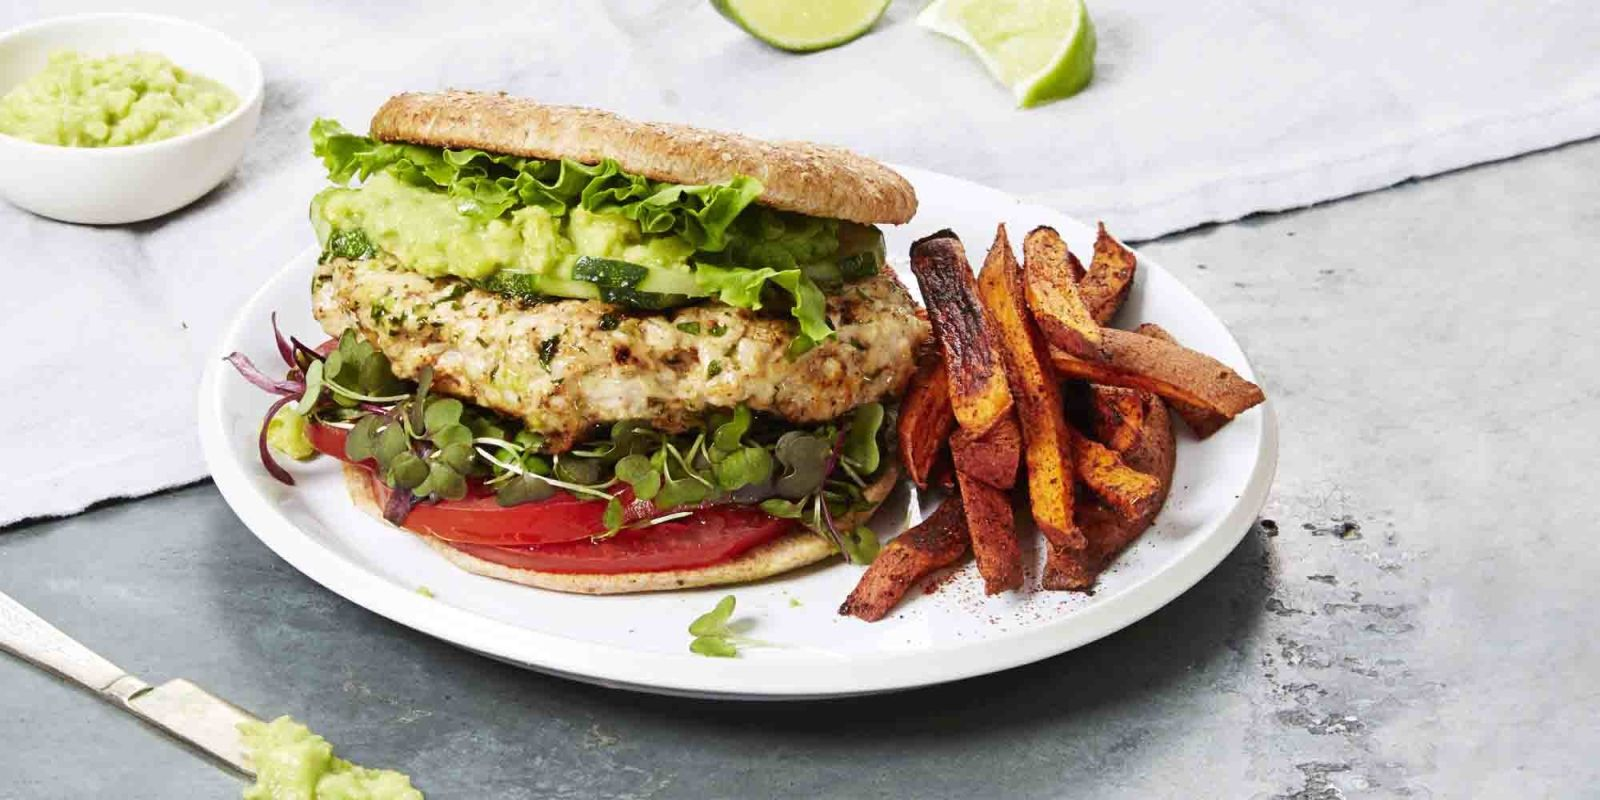 Turkey burger with sweet potato fries for What to serve with thanksgiving turkey